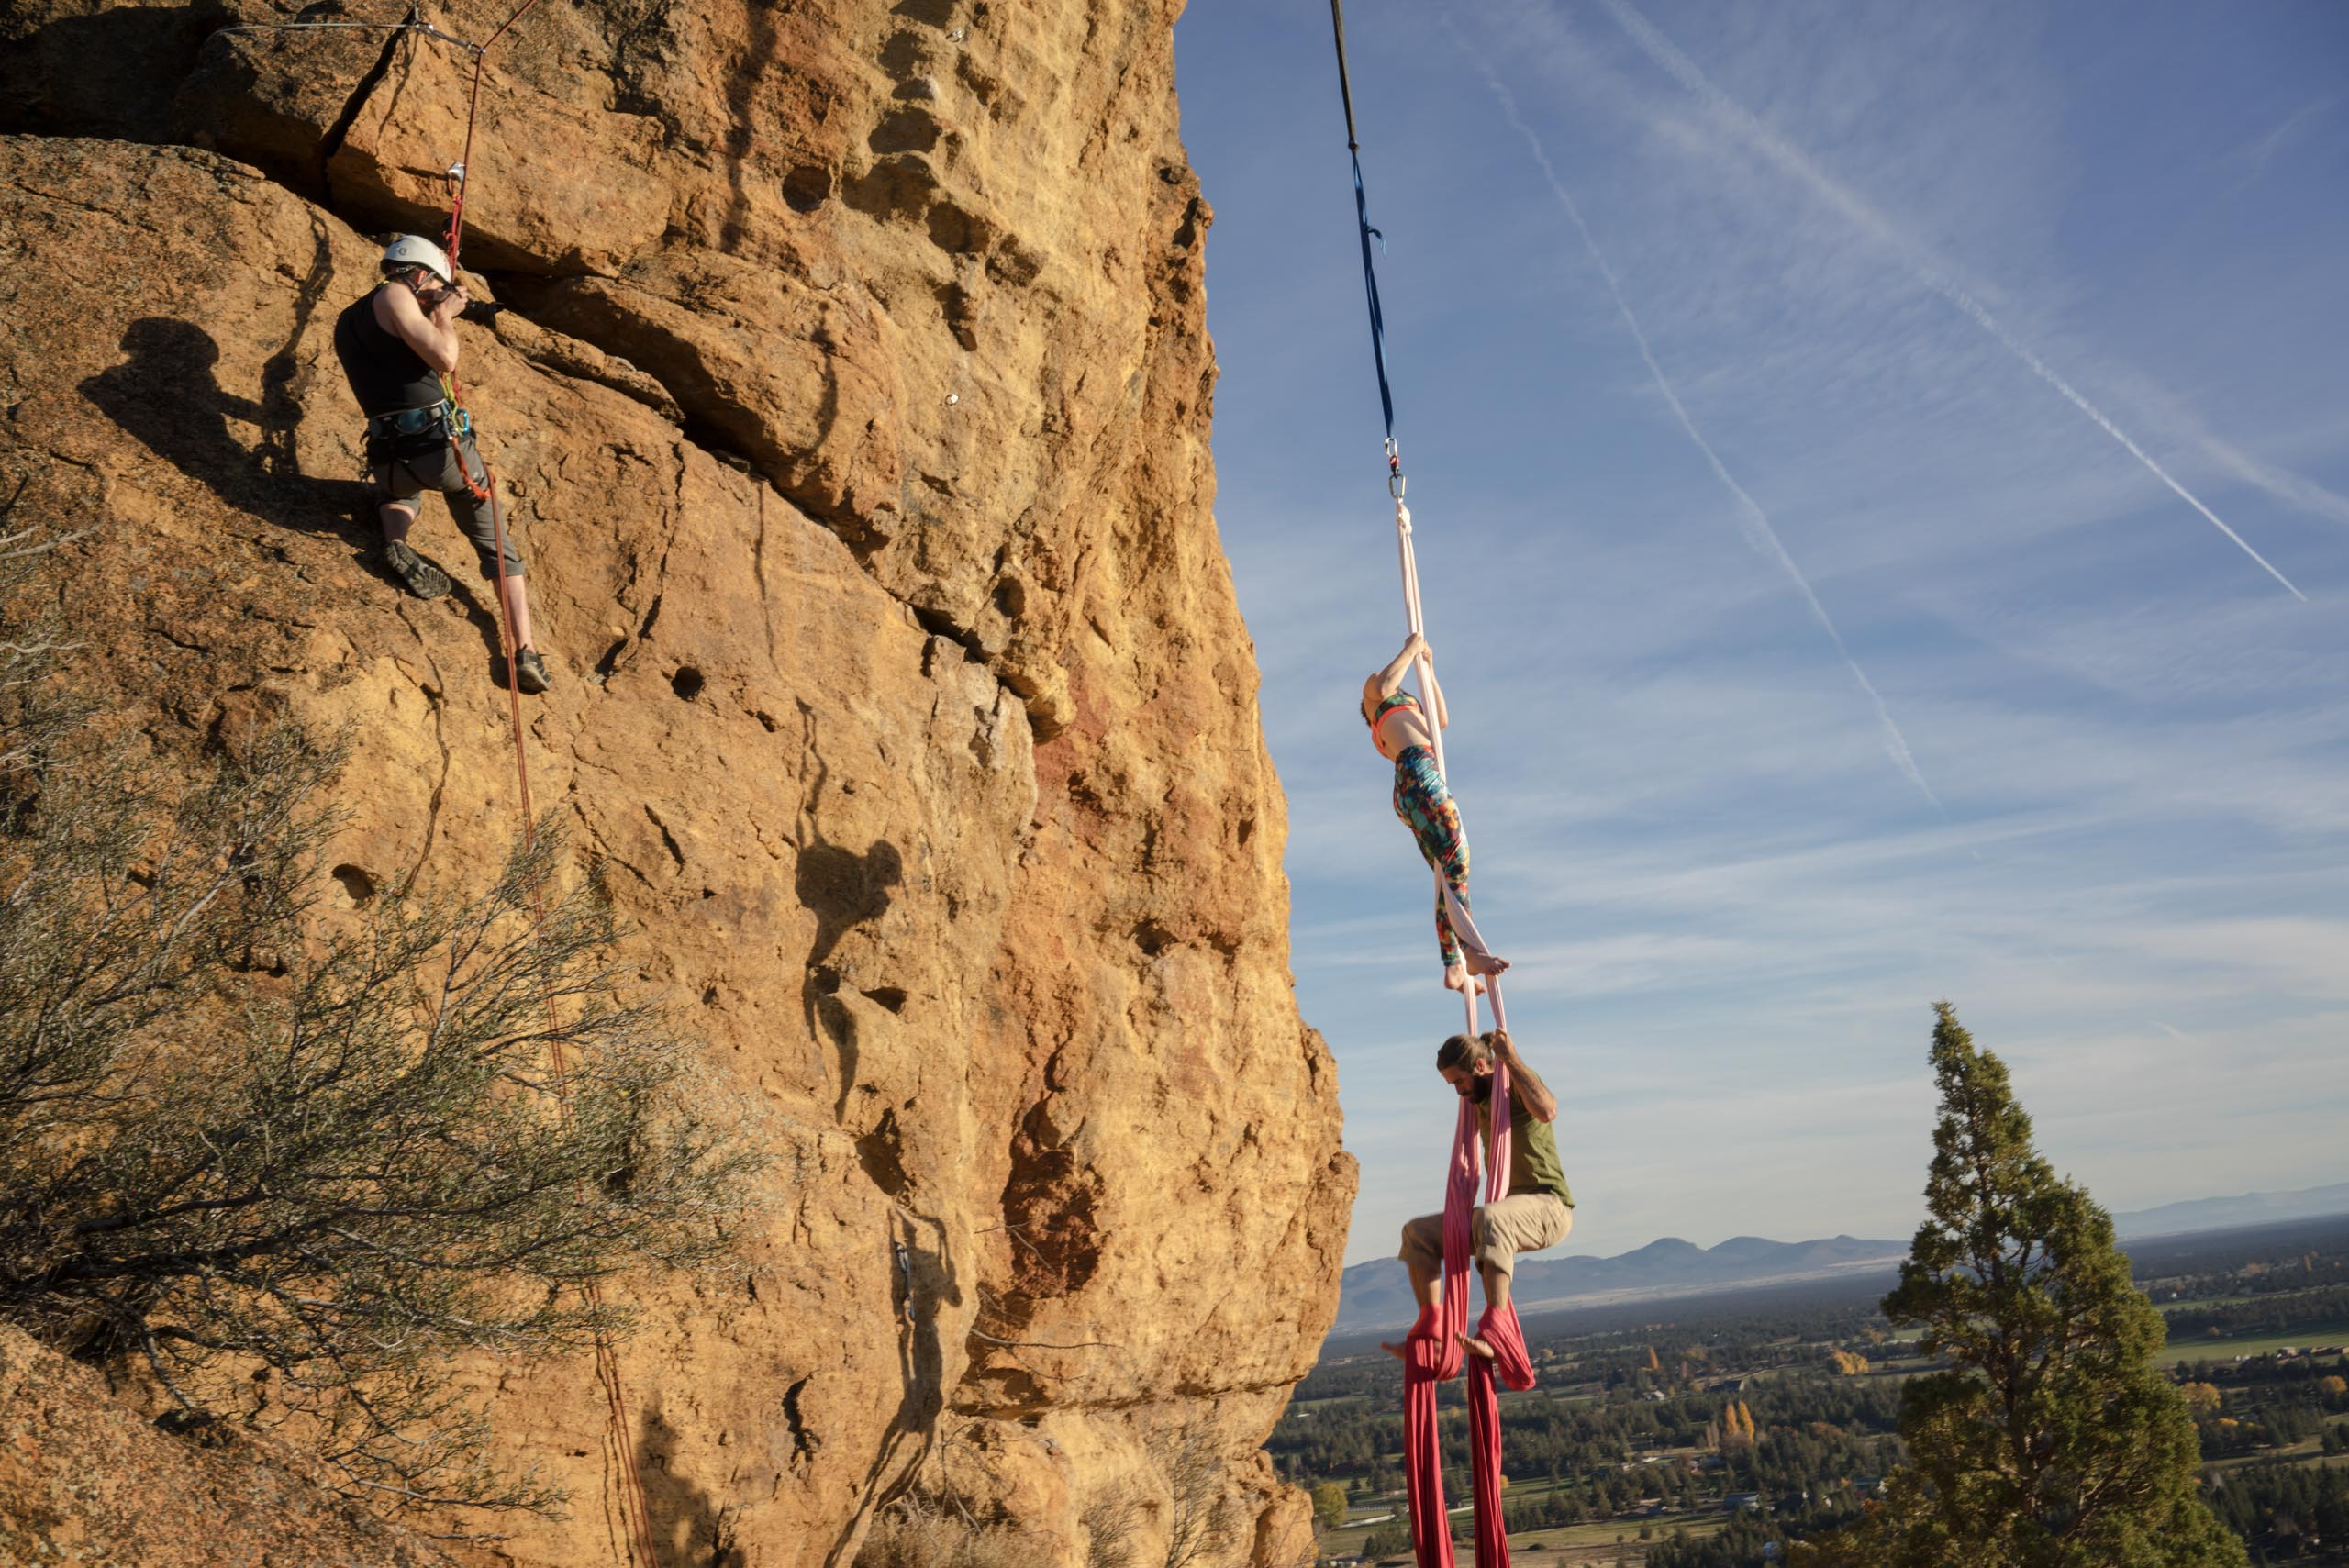 Shooting aerial silks at Smith Rock